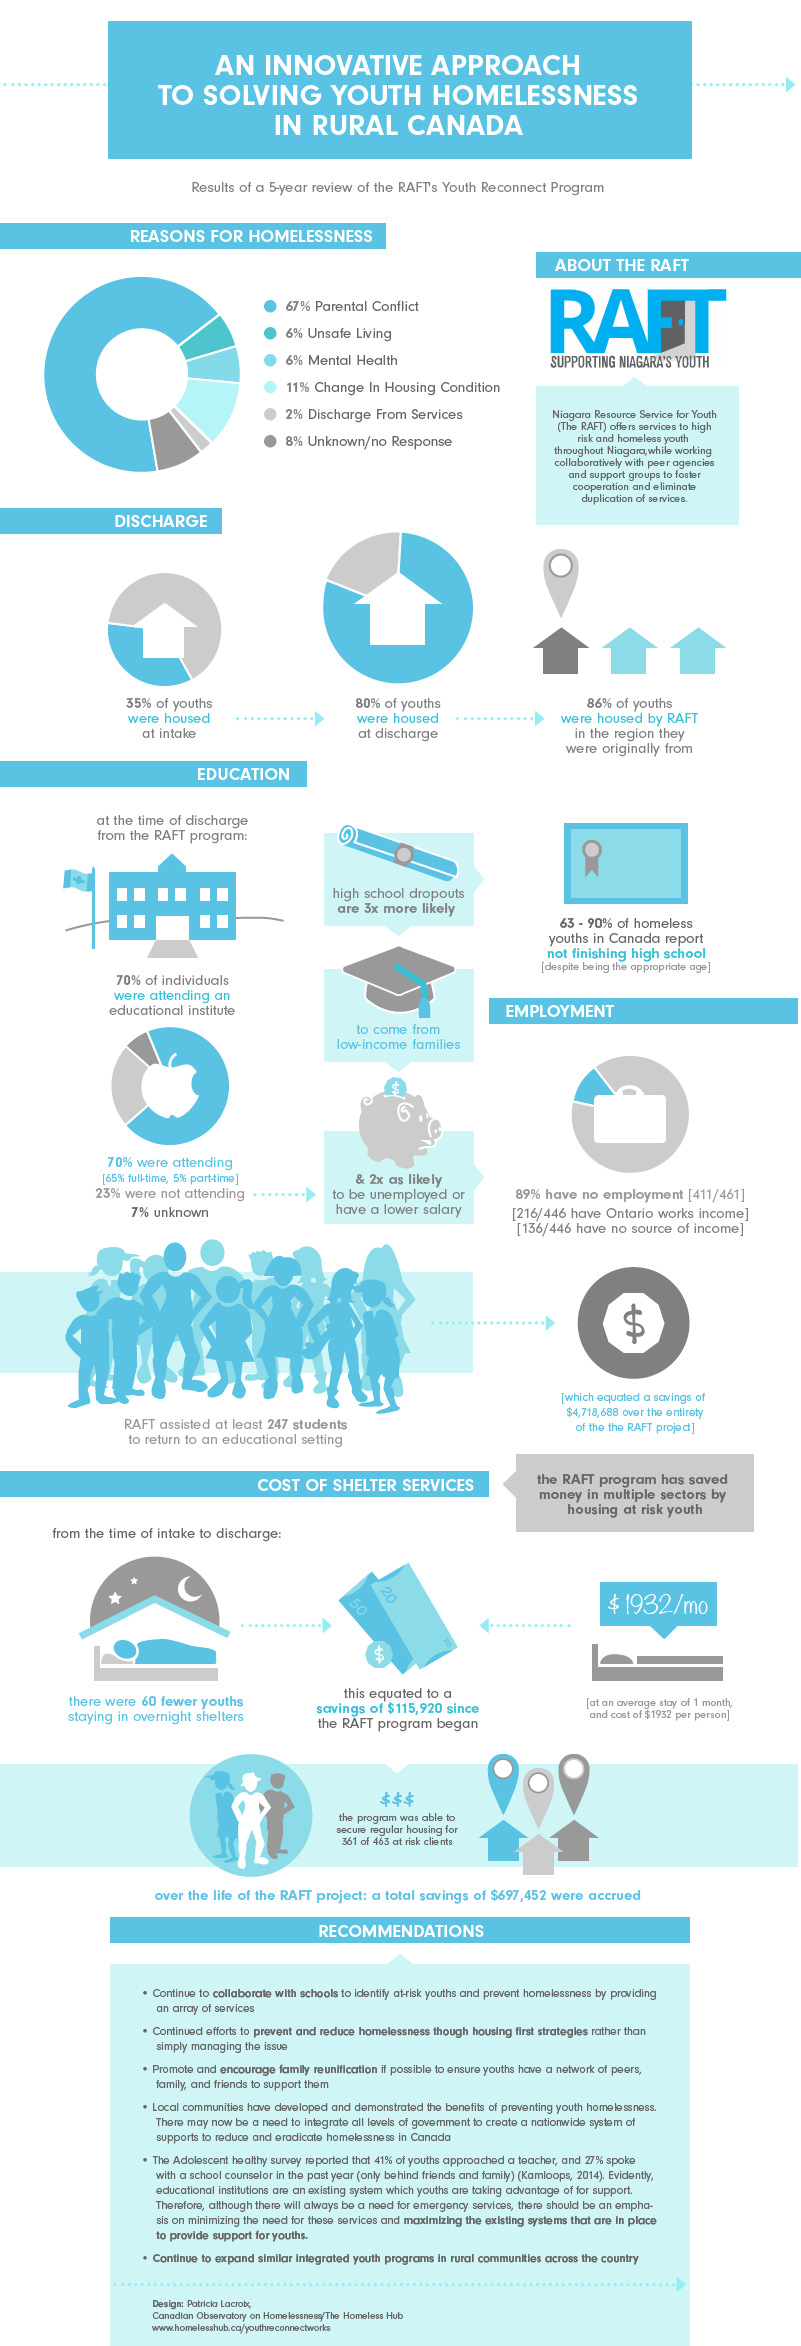 An innovative approach to solving youth homelessness in rural Canada infographic